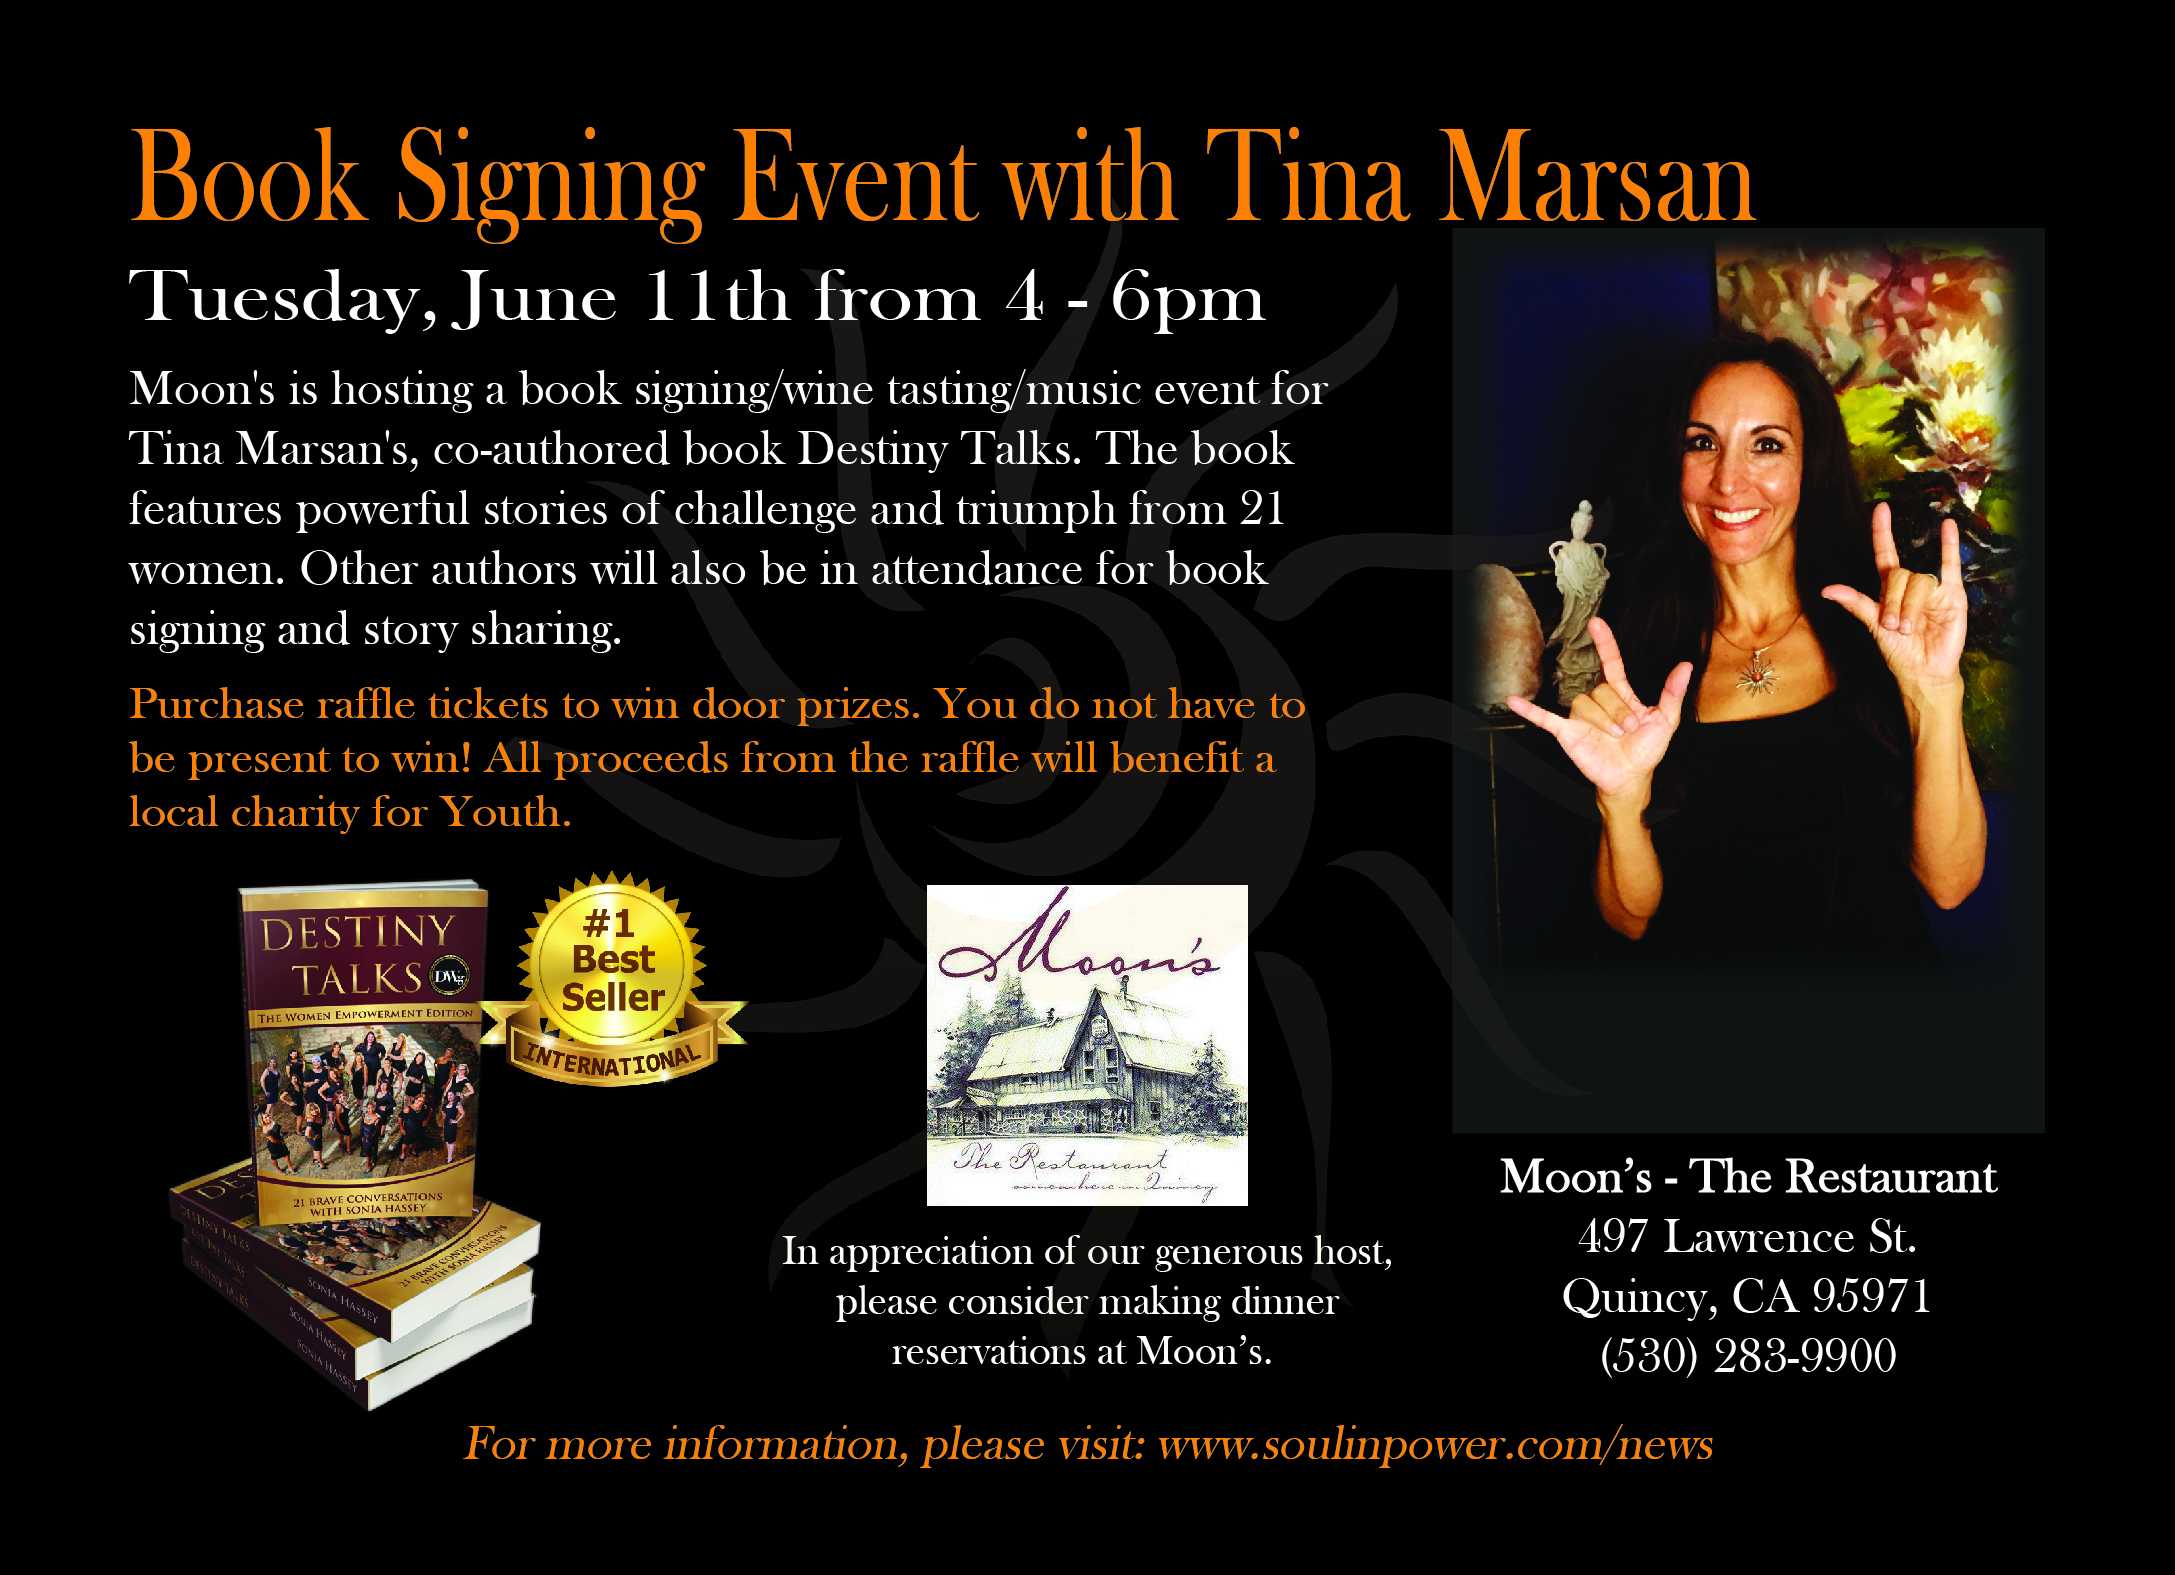 Book signing event at Moon's with Tina Marsan